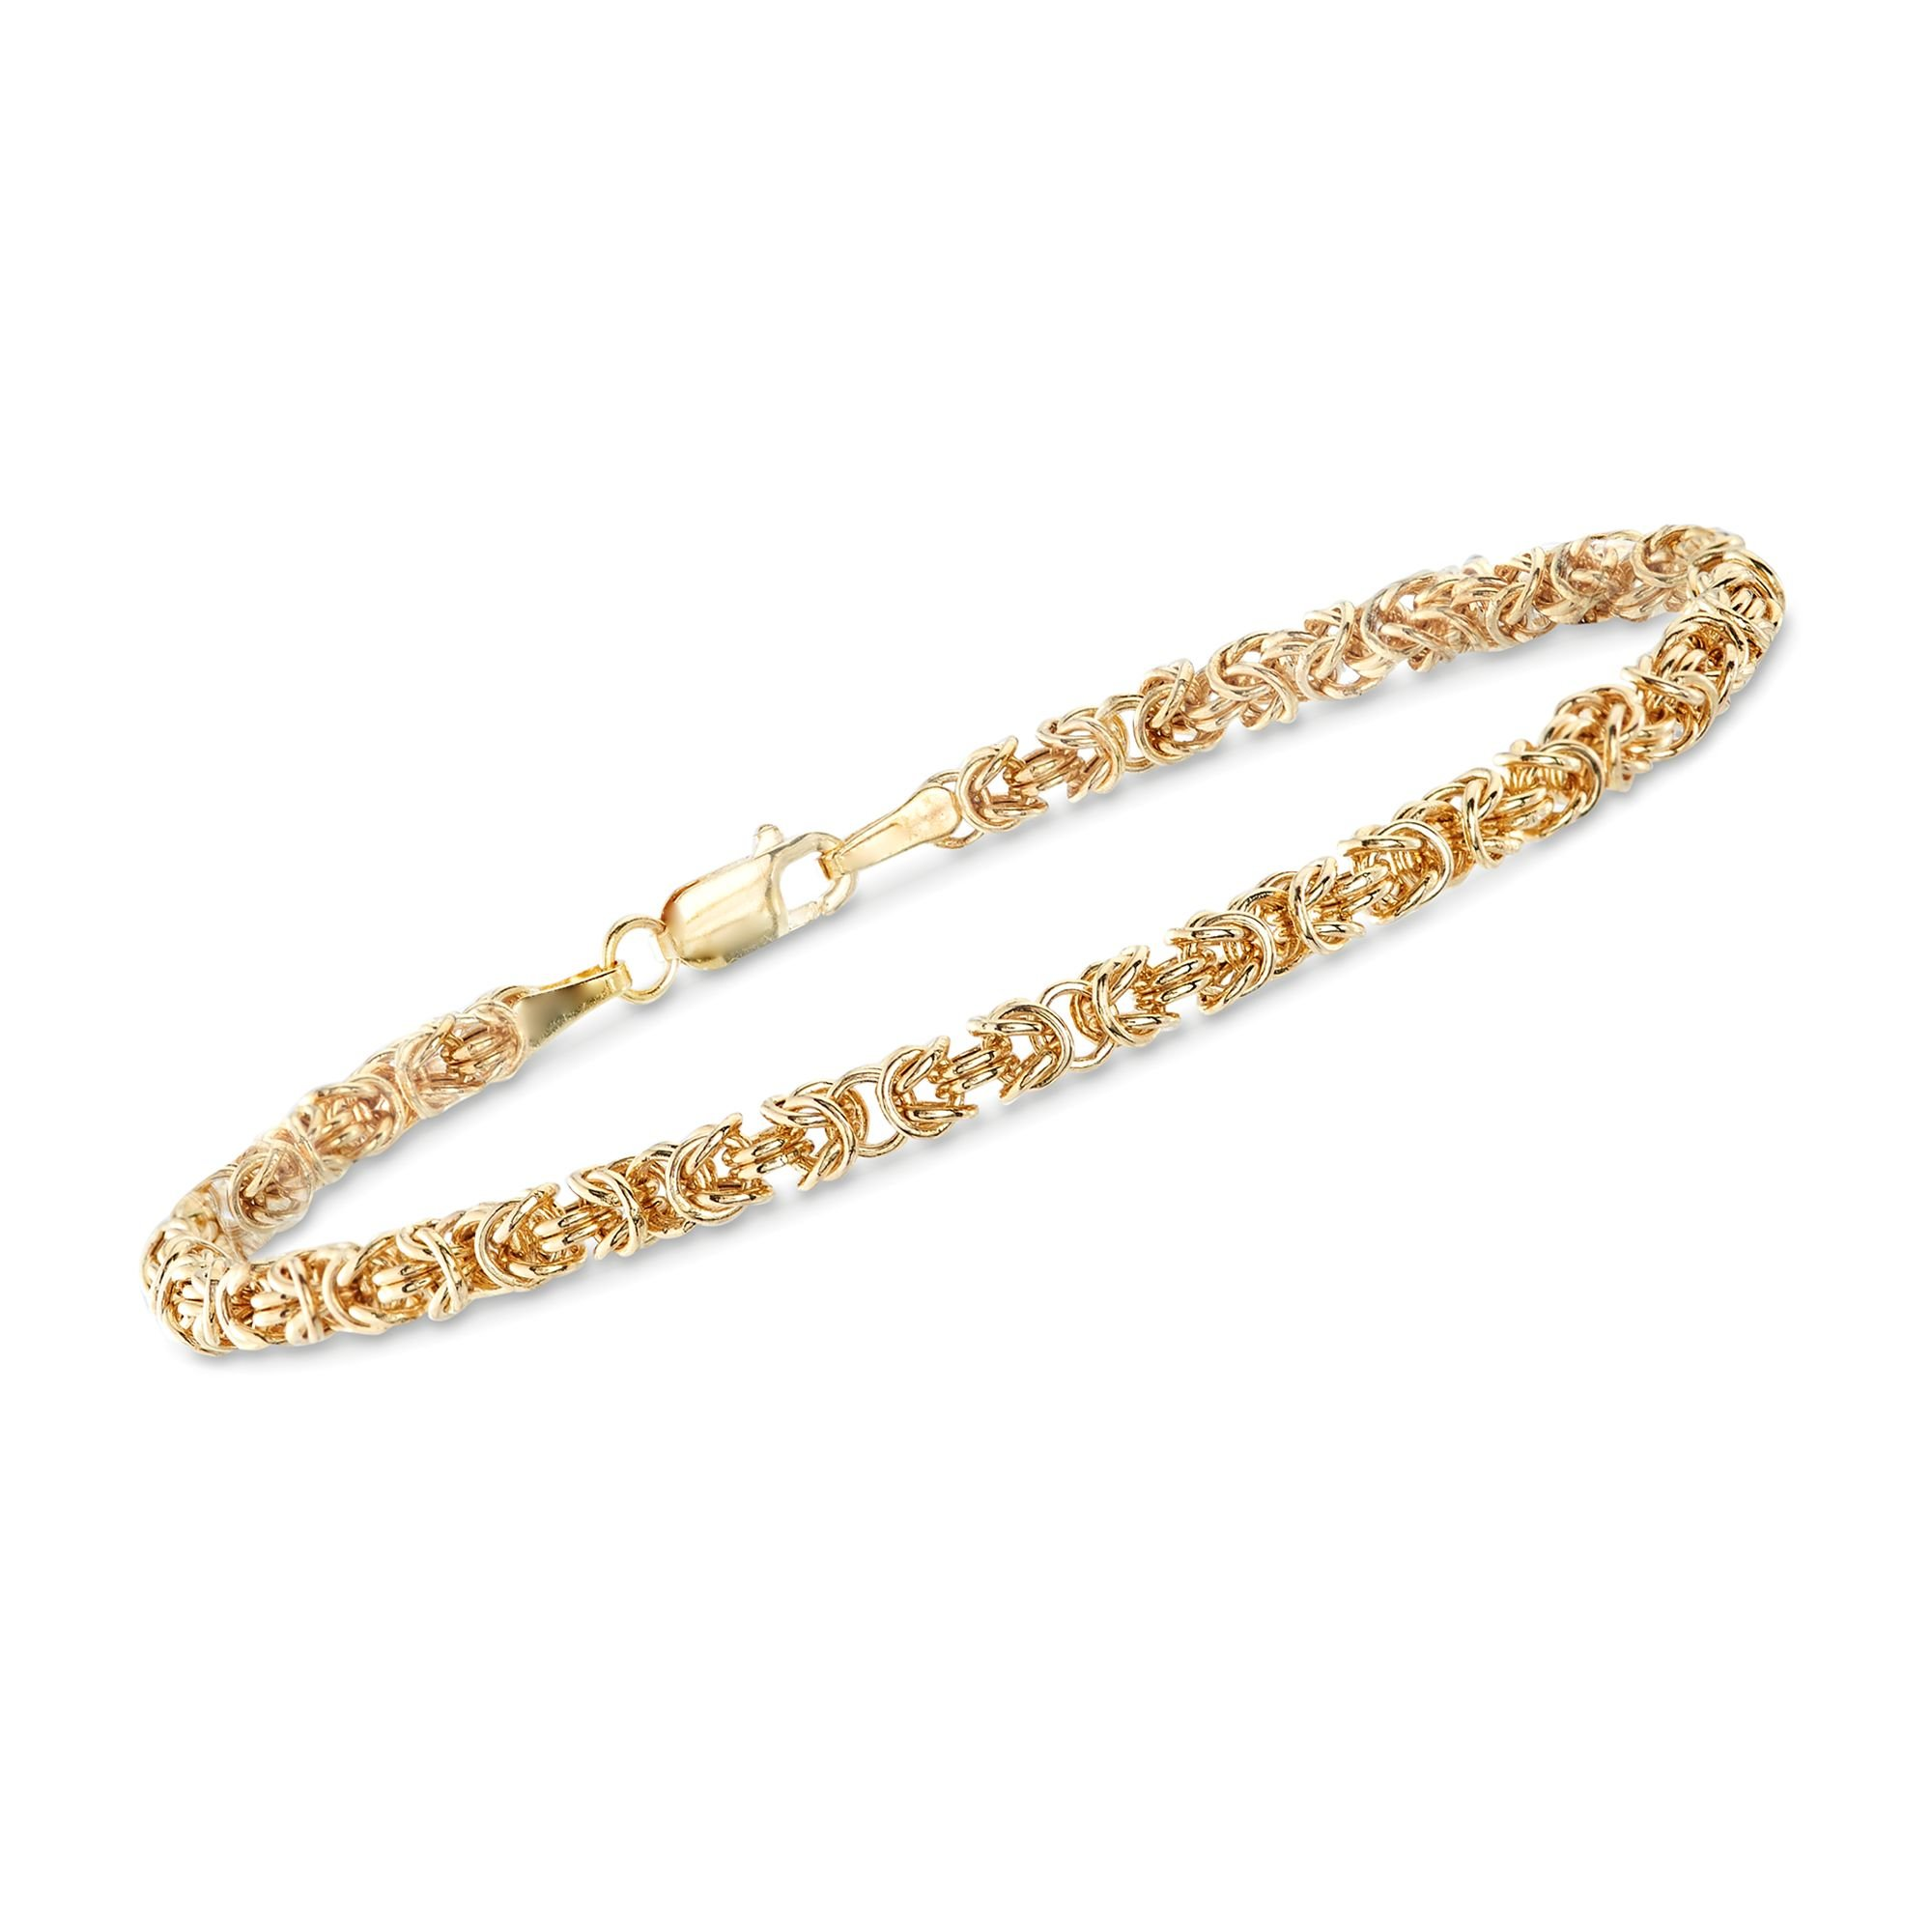 Ross-Simons Italian 14kt Yellow Gold Byzantine Bracelet With Rolled Edges, Includes Presentation Box